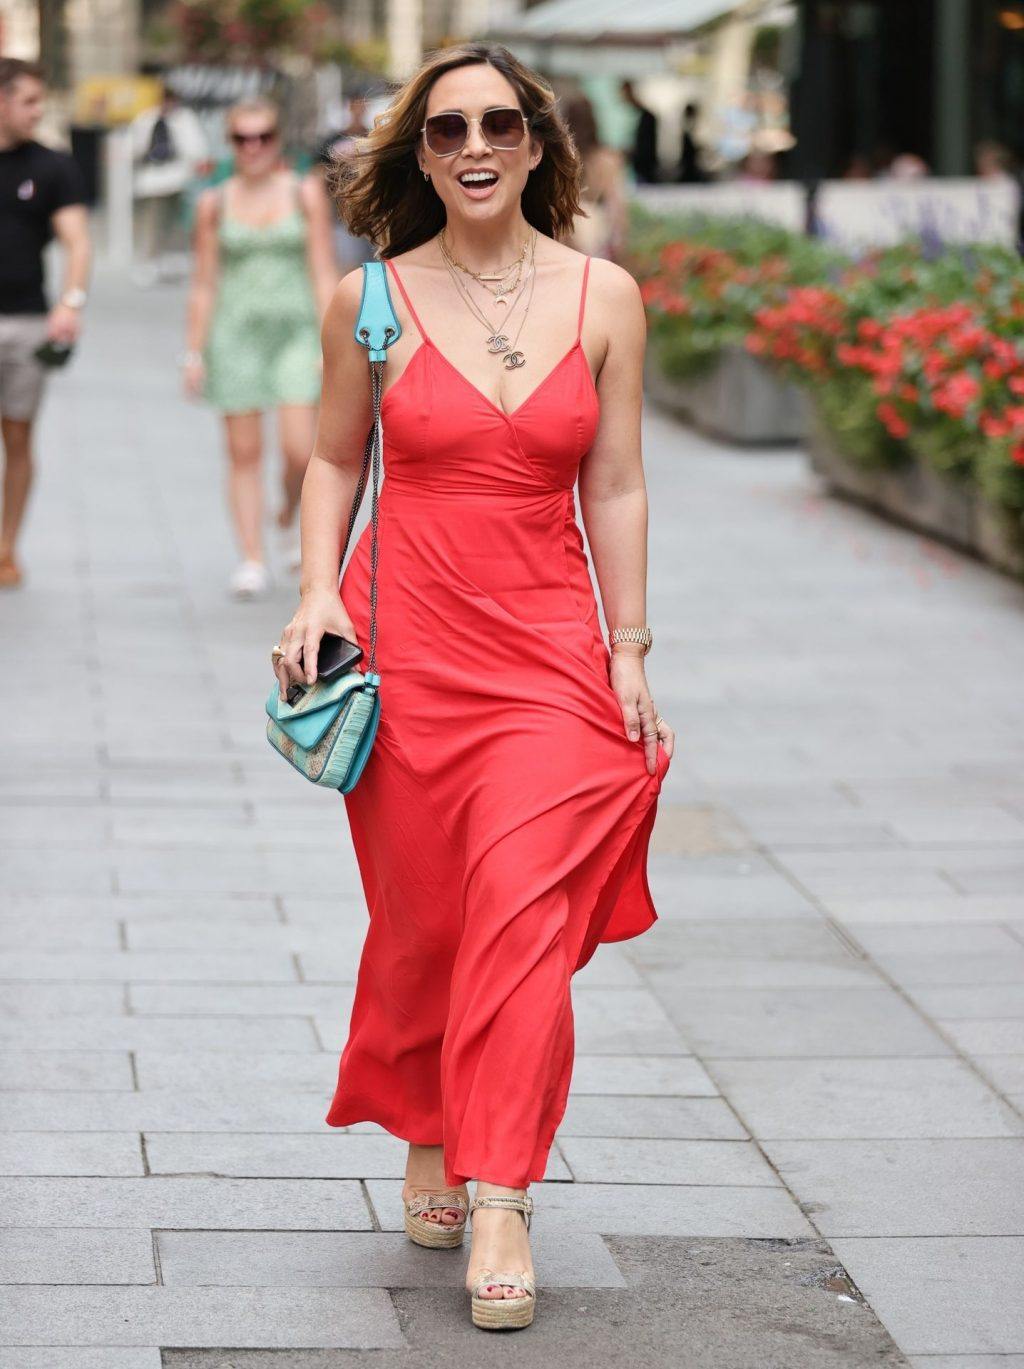 Myleene Klass Looks Stunning in a Red Dress (14 Photos)